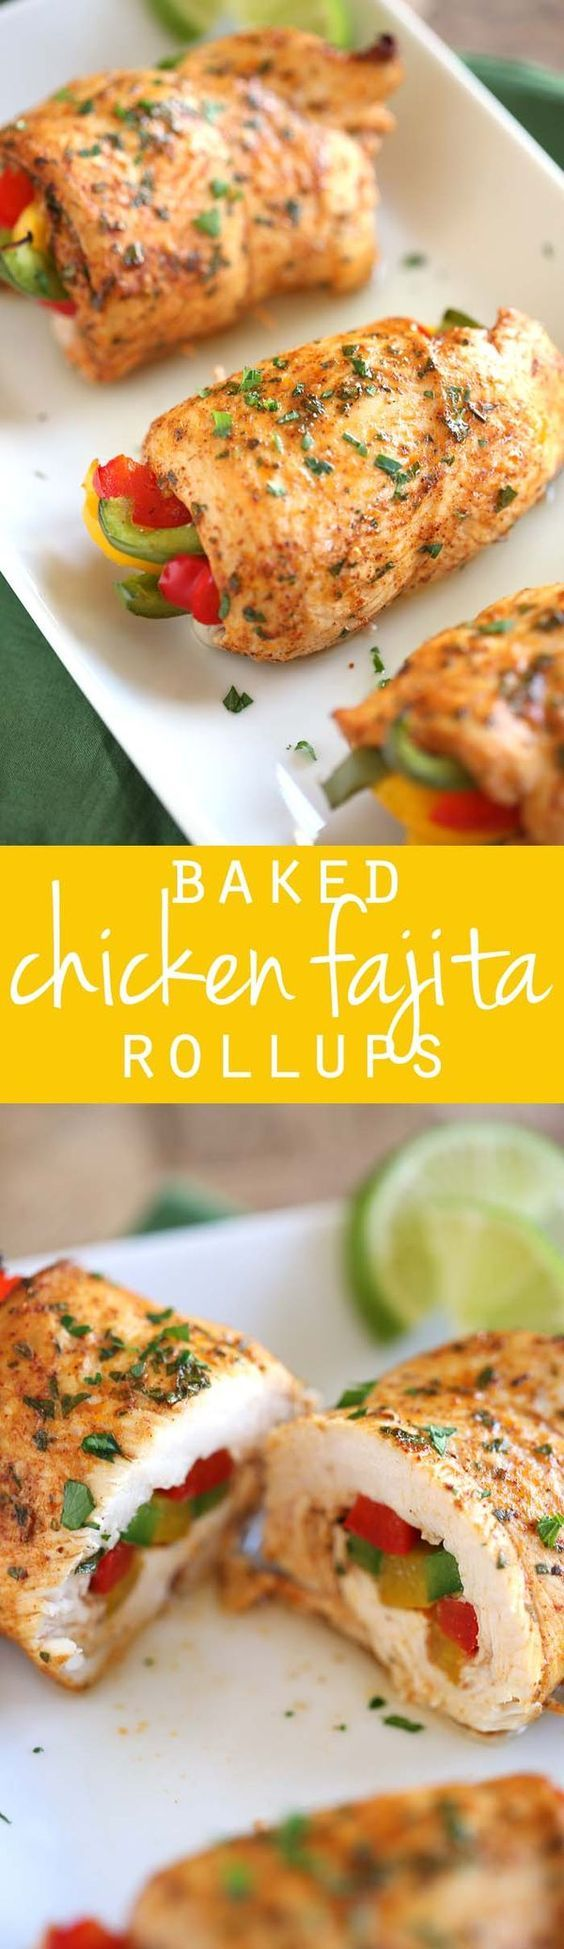 These Baked Chicken Fajita Roll-Ups are easy to make, super moist and make the perfect delicious low-carb meal! eat-yourself-skinny.com: